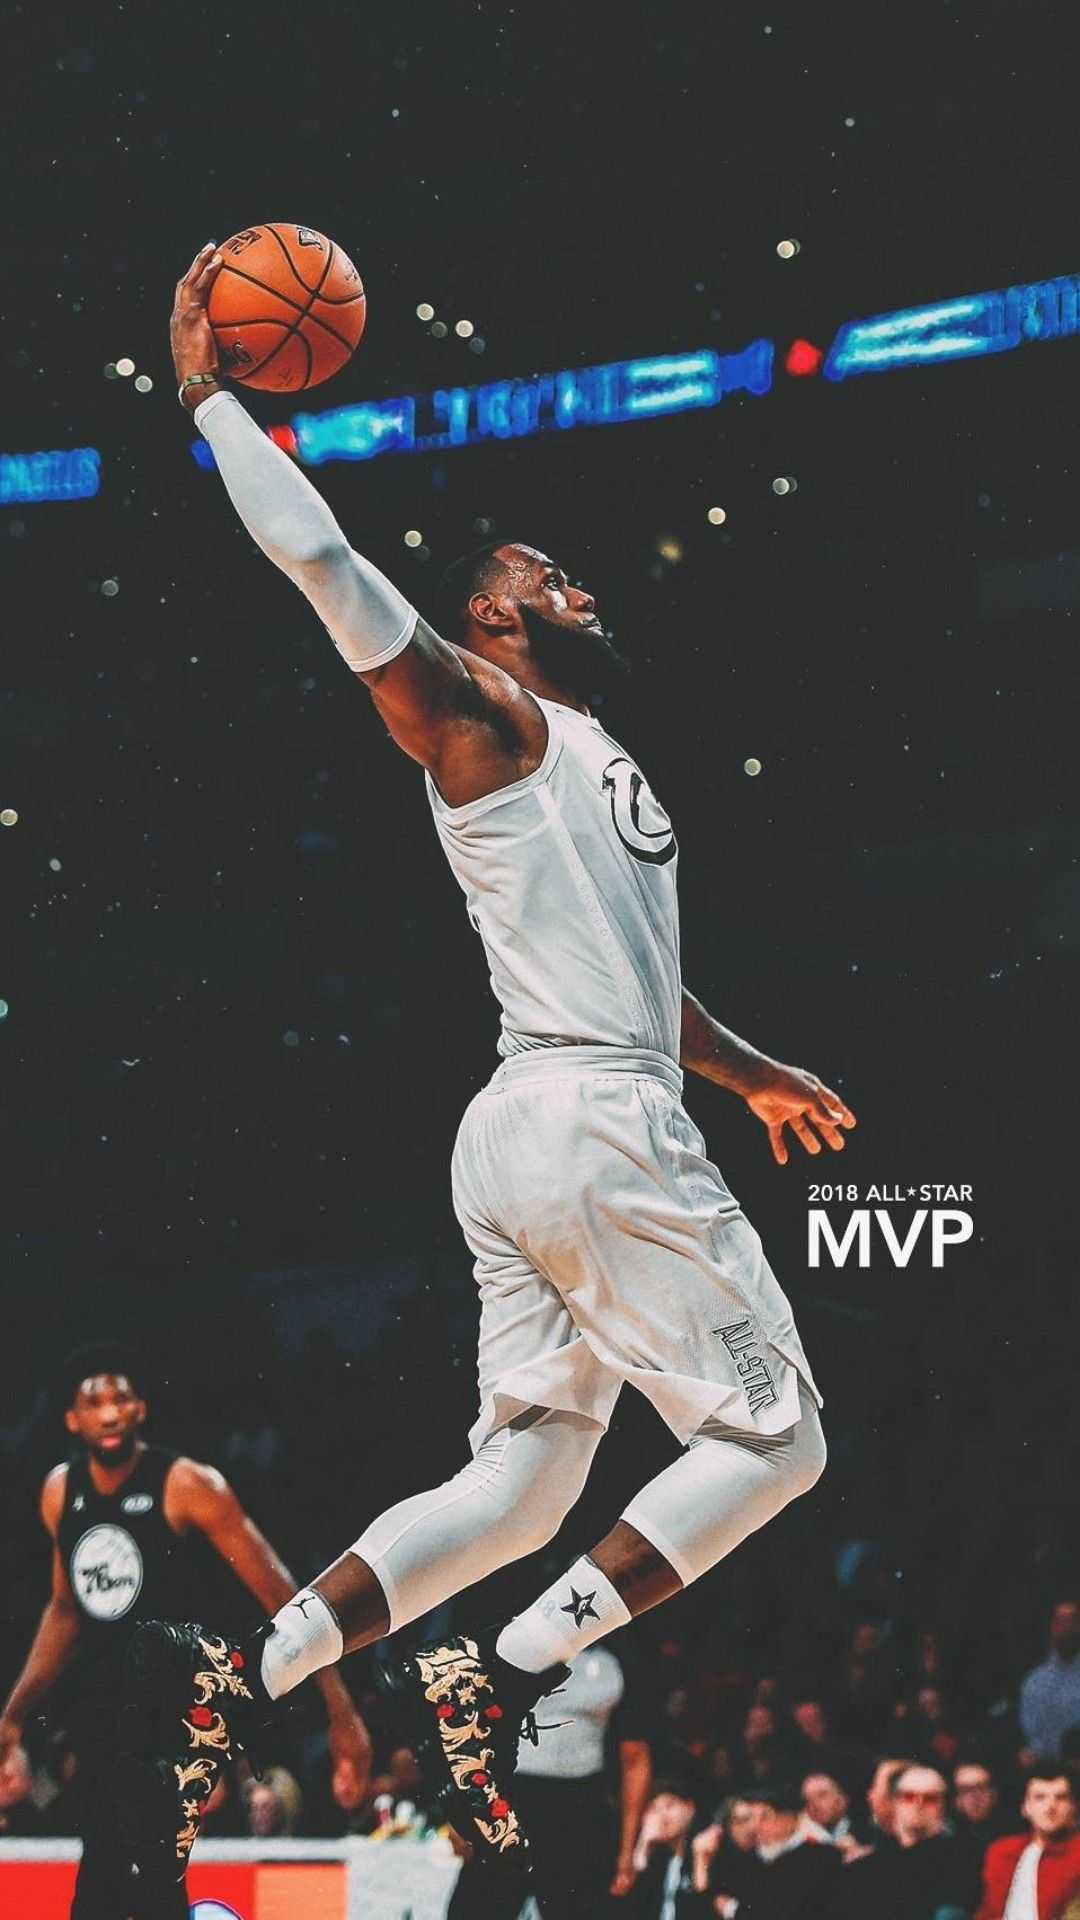 Lebron James All Star MVP Wallpaper